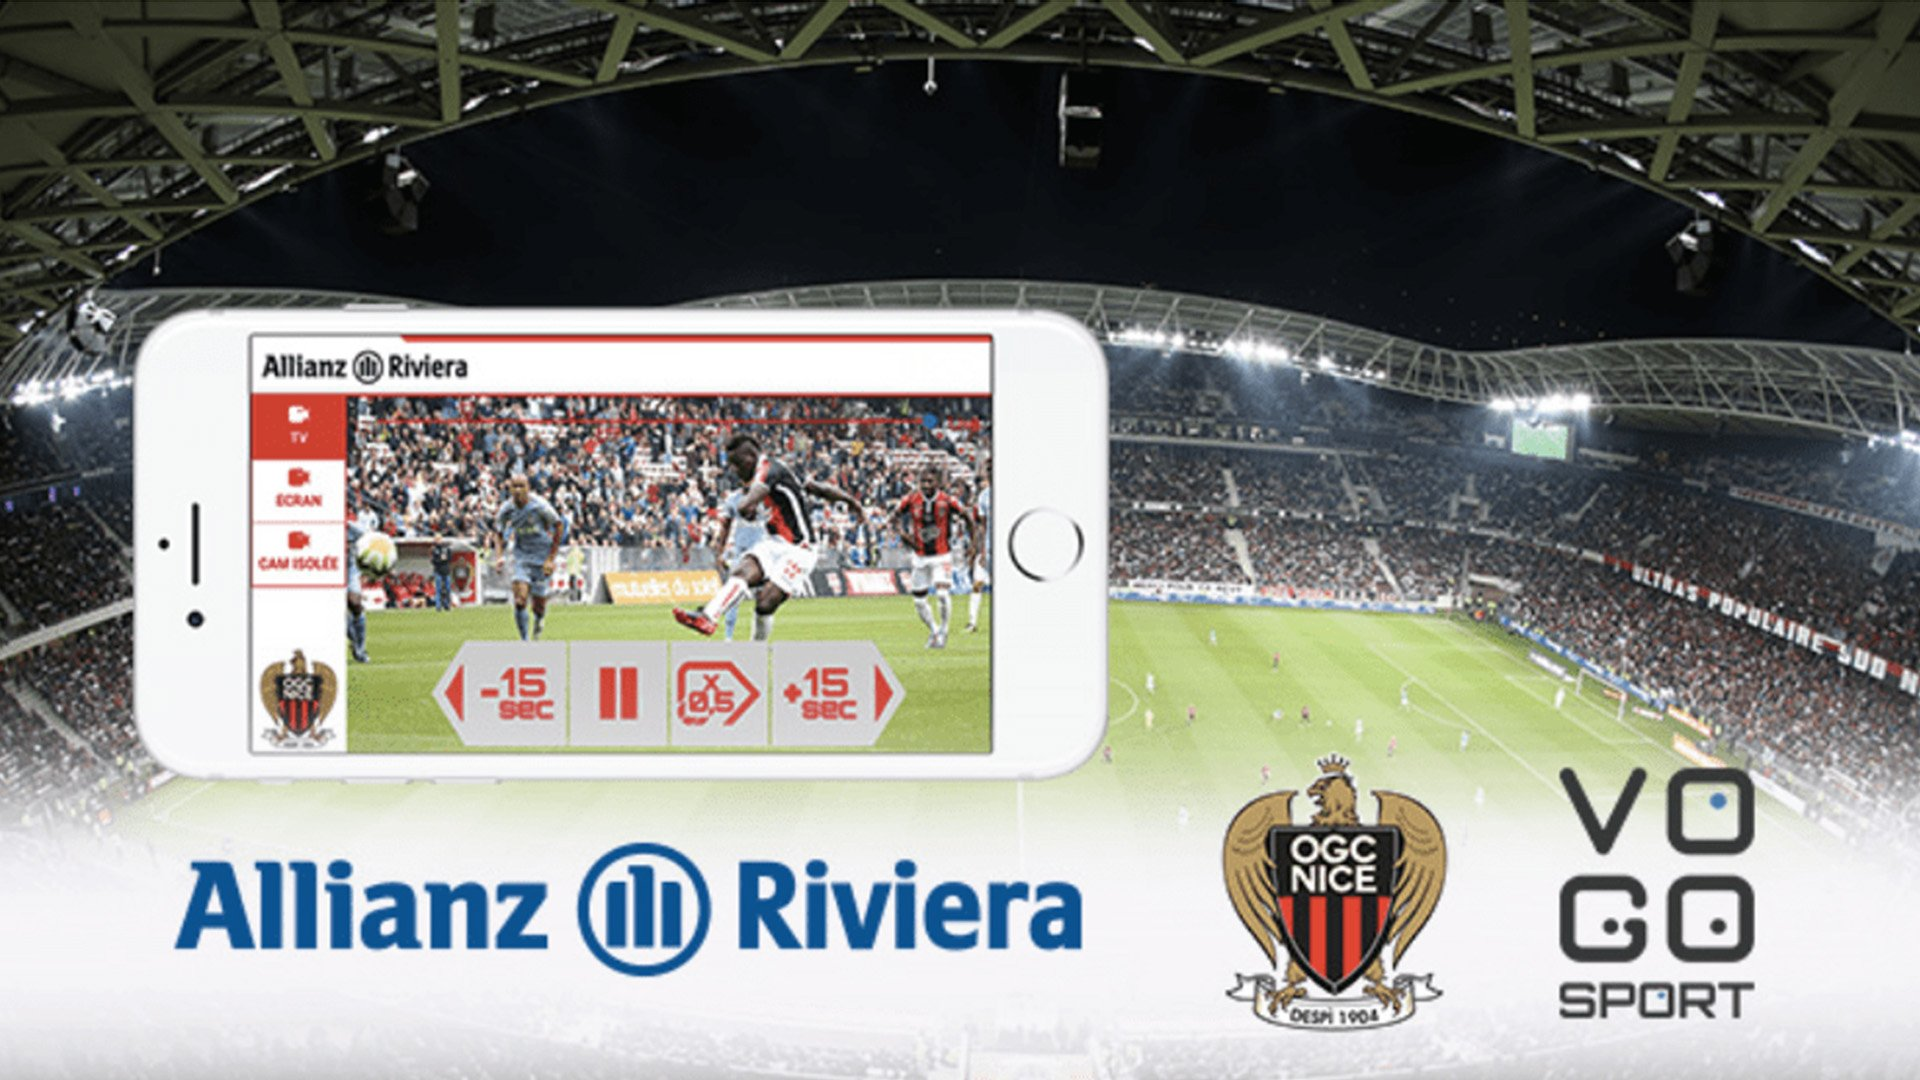 A first for VOGO SPORT with the Allianz Riviera Stadium and OGC Nice soccer